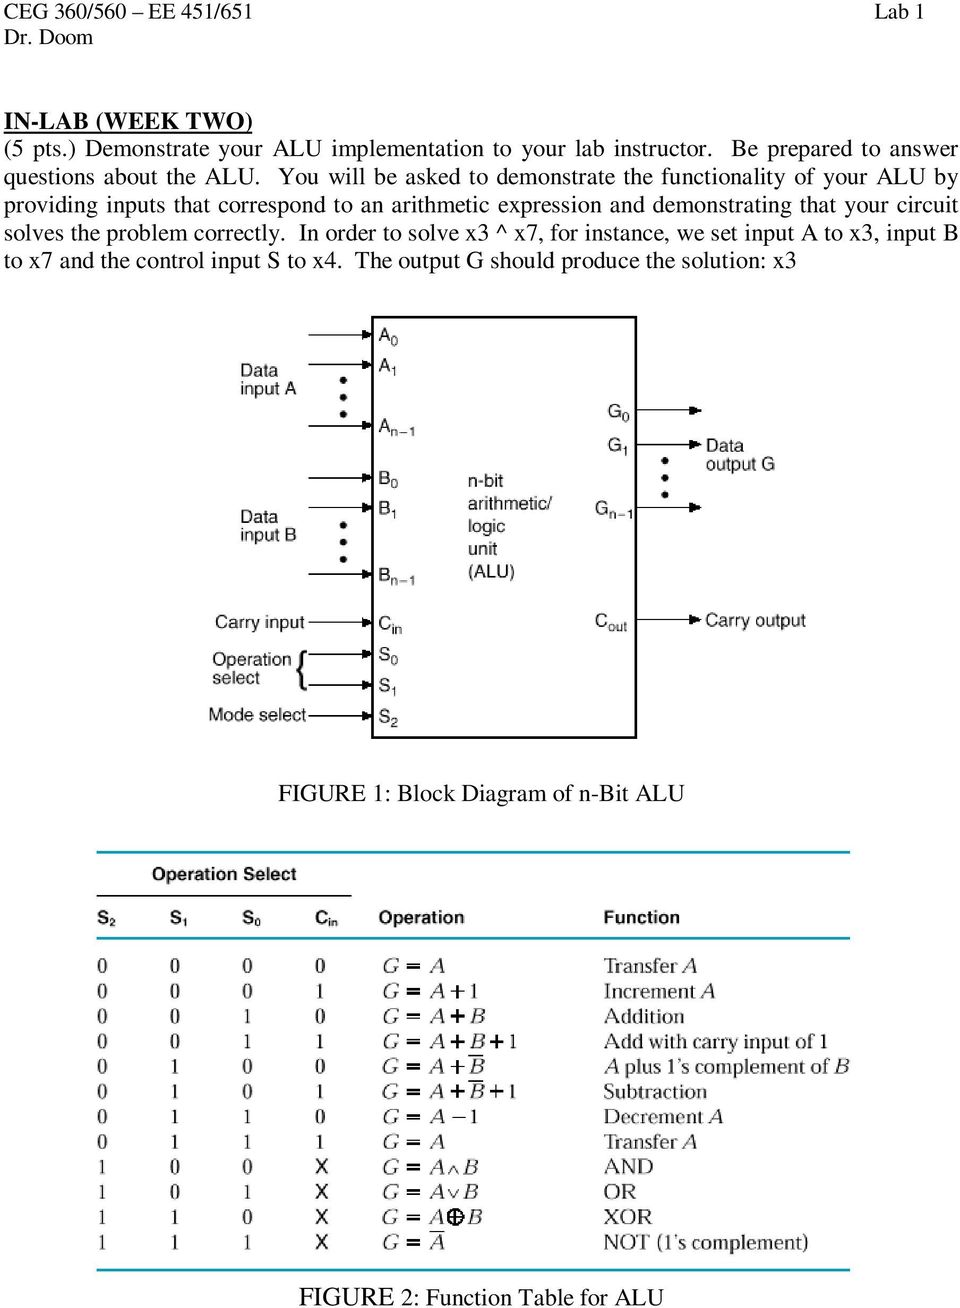 Mips Alu Diagram Not Lossing Wiring 8 Bit Logic 4 Function Circuit Get Free Image About Truth Table Cpu